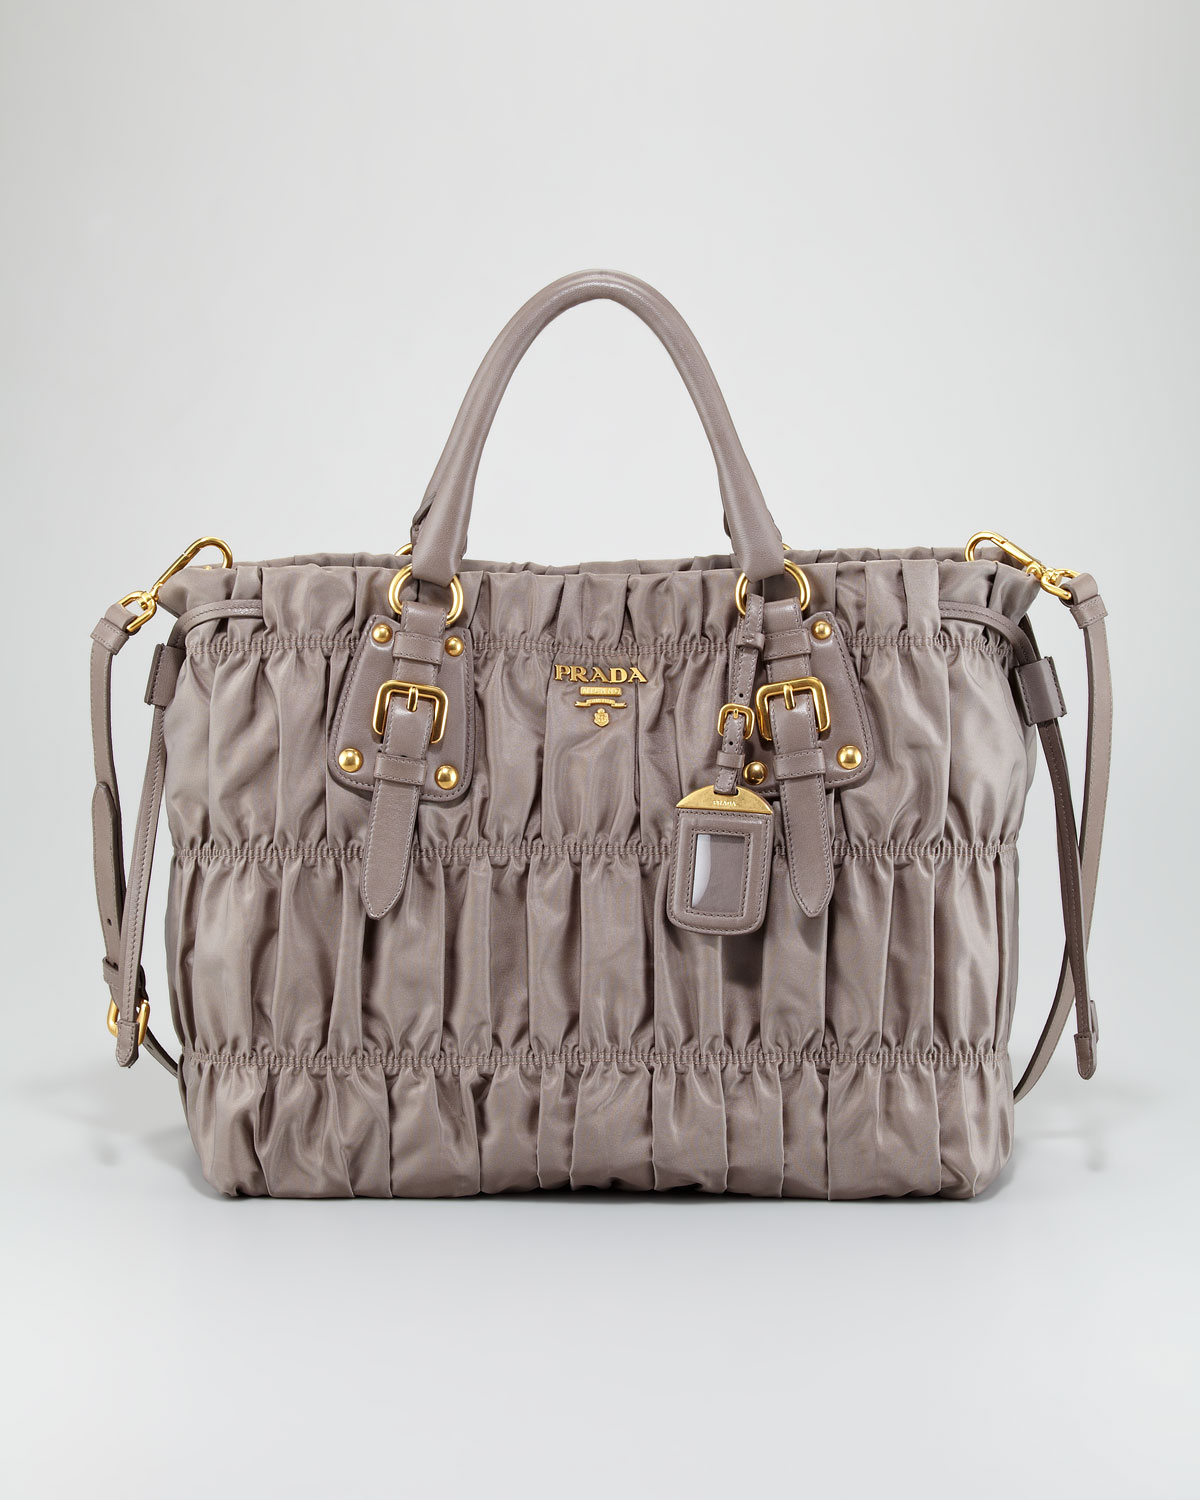 af9412e178f3 ... discount code for new zealand lyst prada tessuto gauffre large tote in  gray 2e6c4 9412e 29c8a